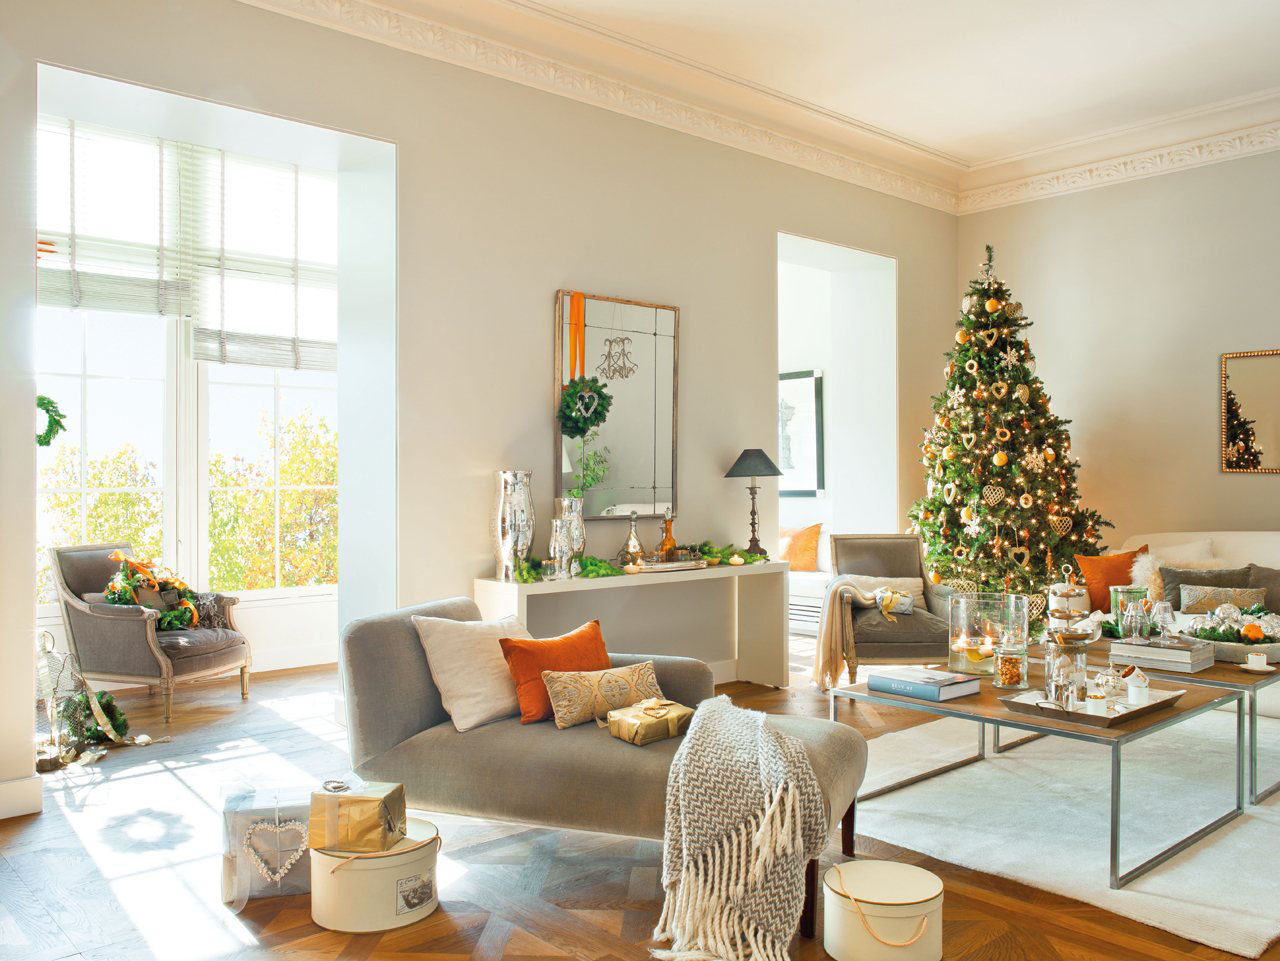 Modern Christmas Decorations for Inspiring Winter Holidays (12)